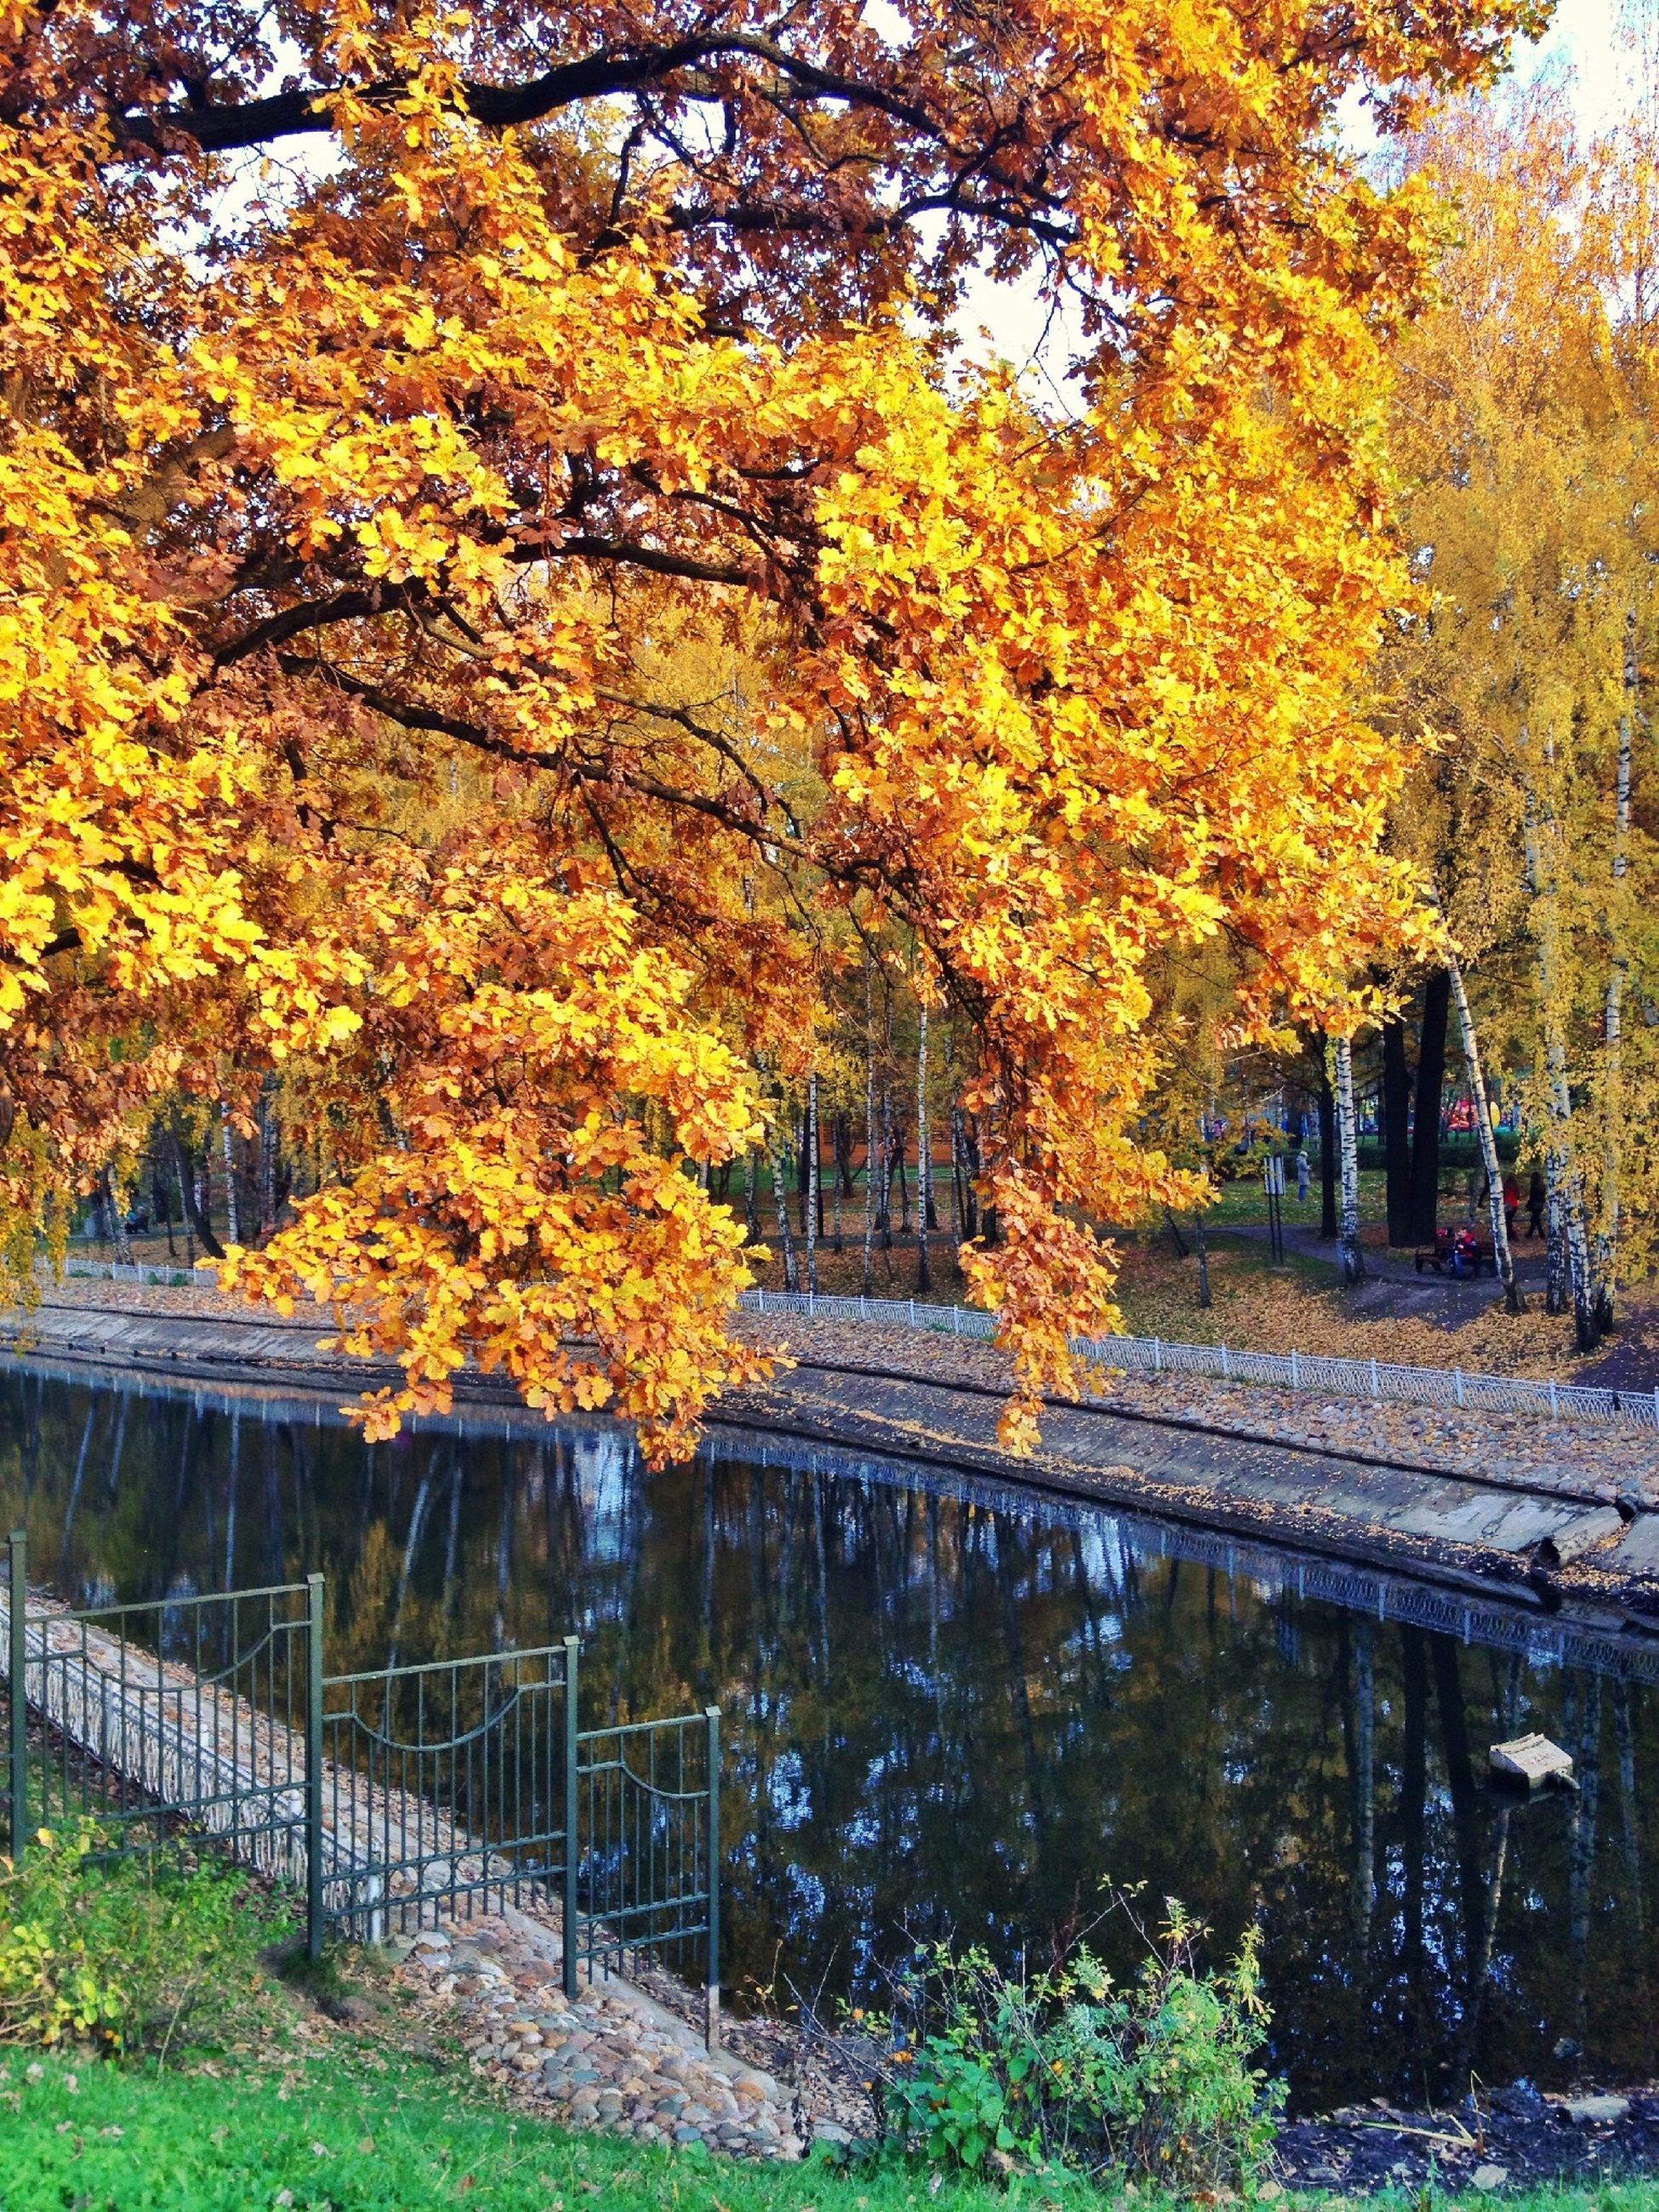 tree, autumn, change, season, yellow, branch, beauty in nature, orange color, nature, park - man made space, tranquility, growth, railing, tranquil scene, scenics, fence, leaf, tree trunk, outdoors, day